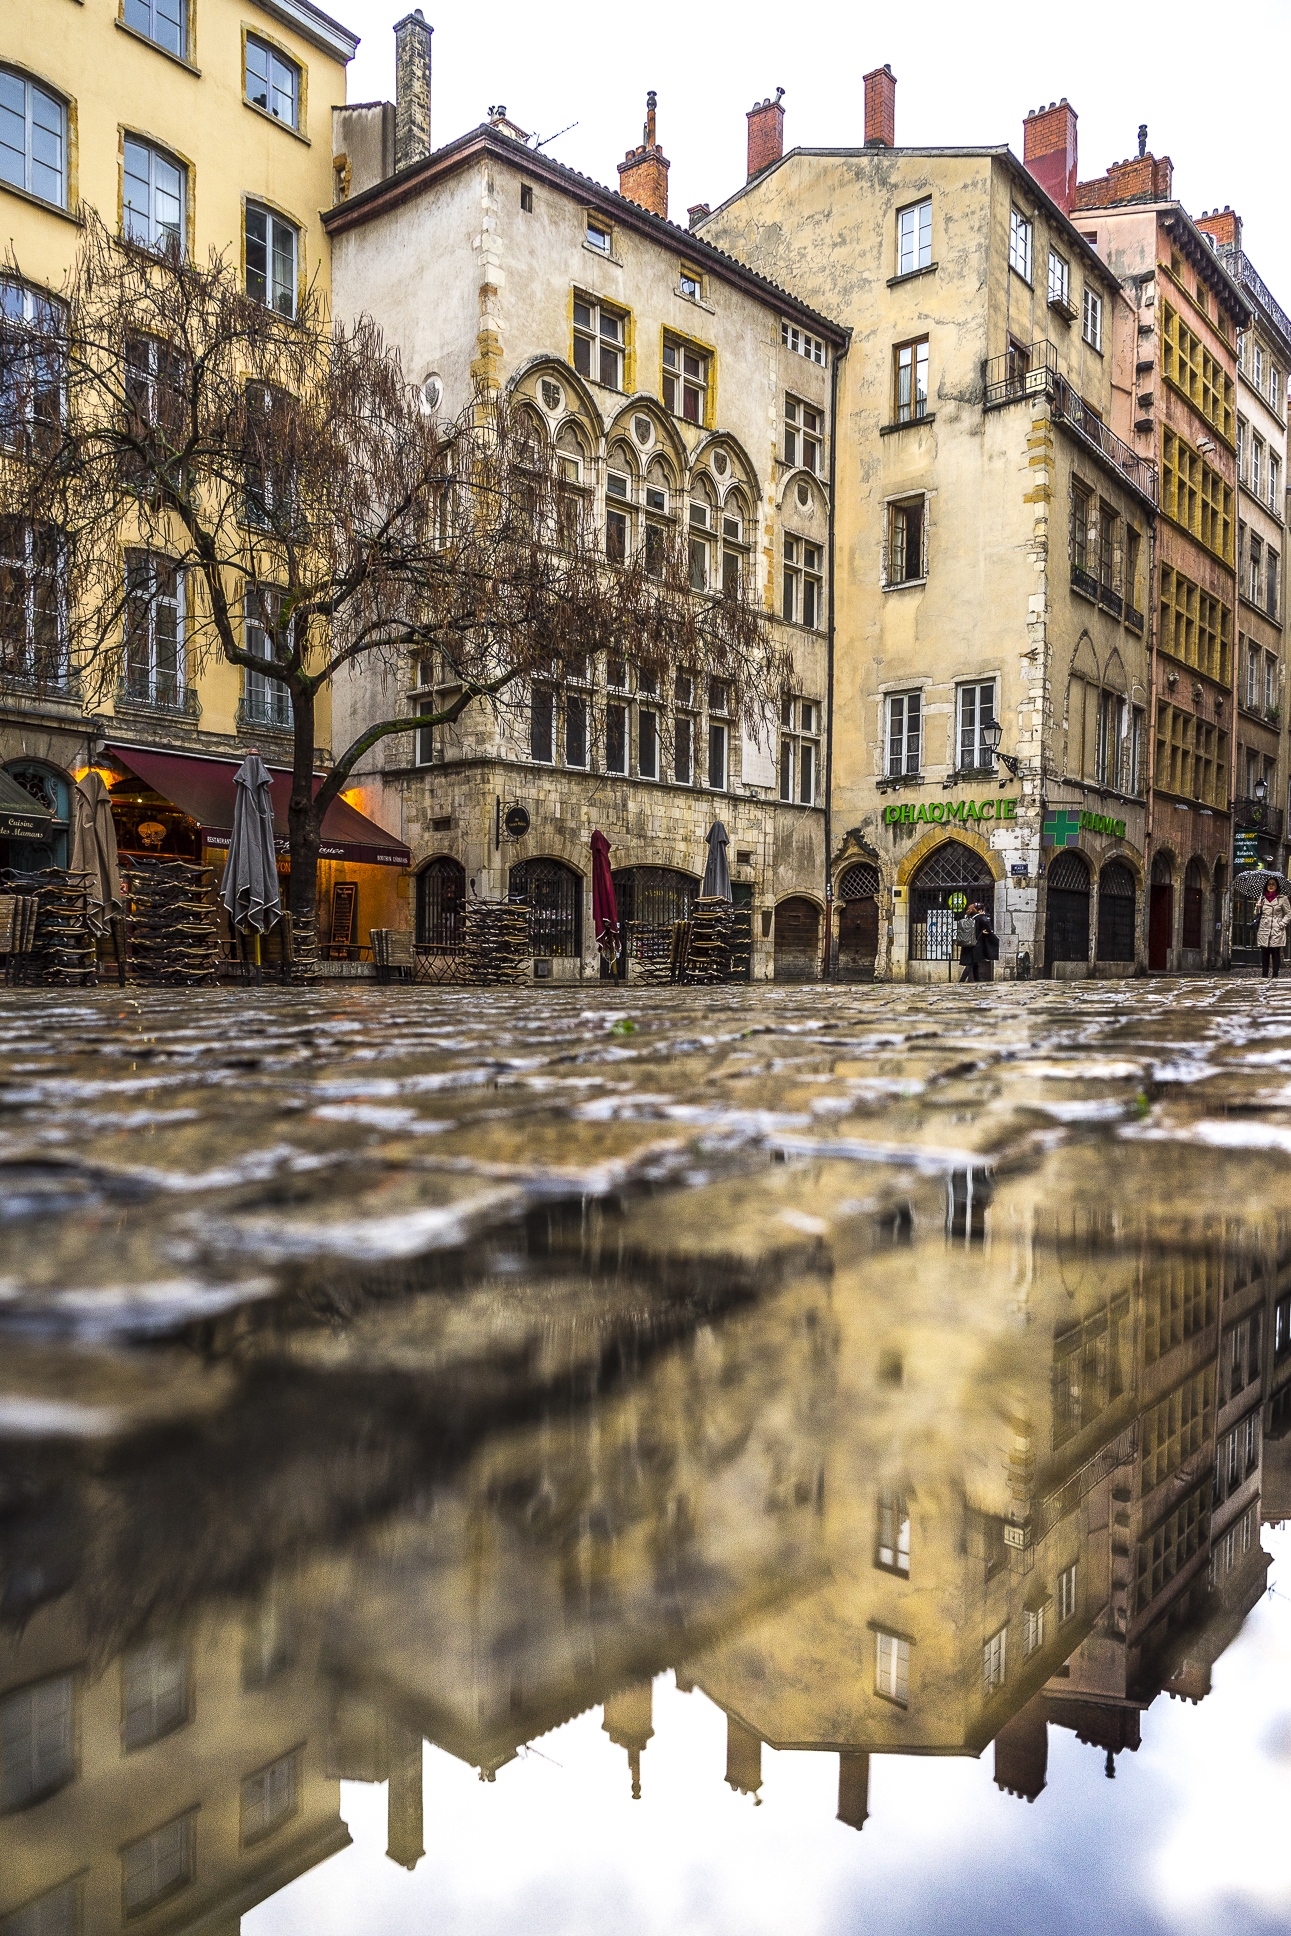 Lyon, France - Maison Thomassin reflecting in a puddle